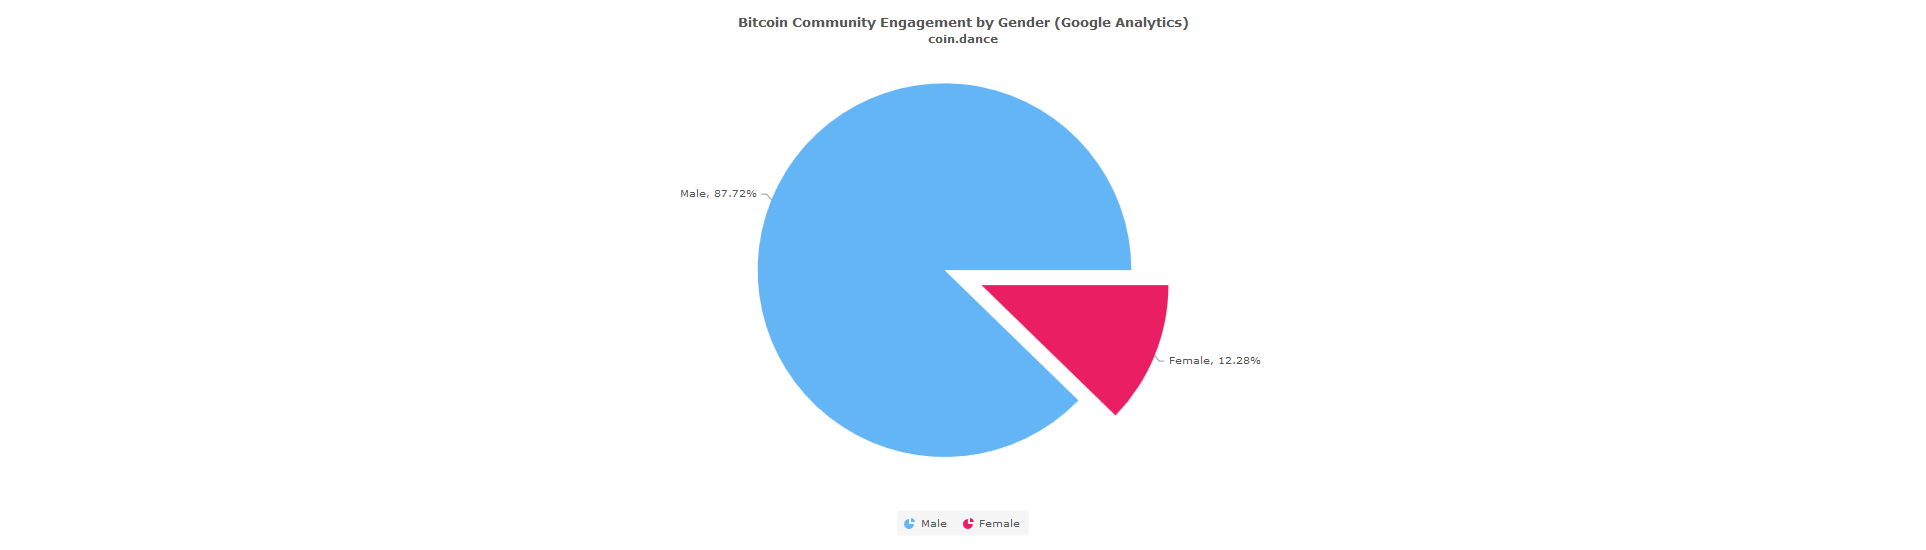 Coin Dance Gender Demographics